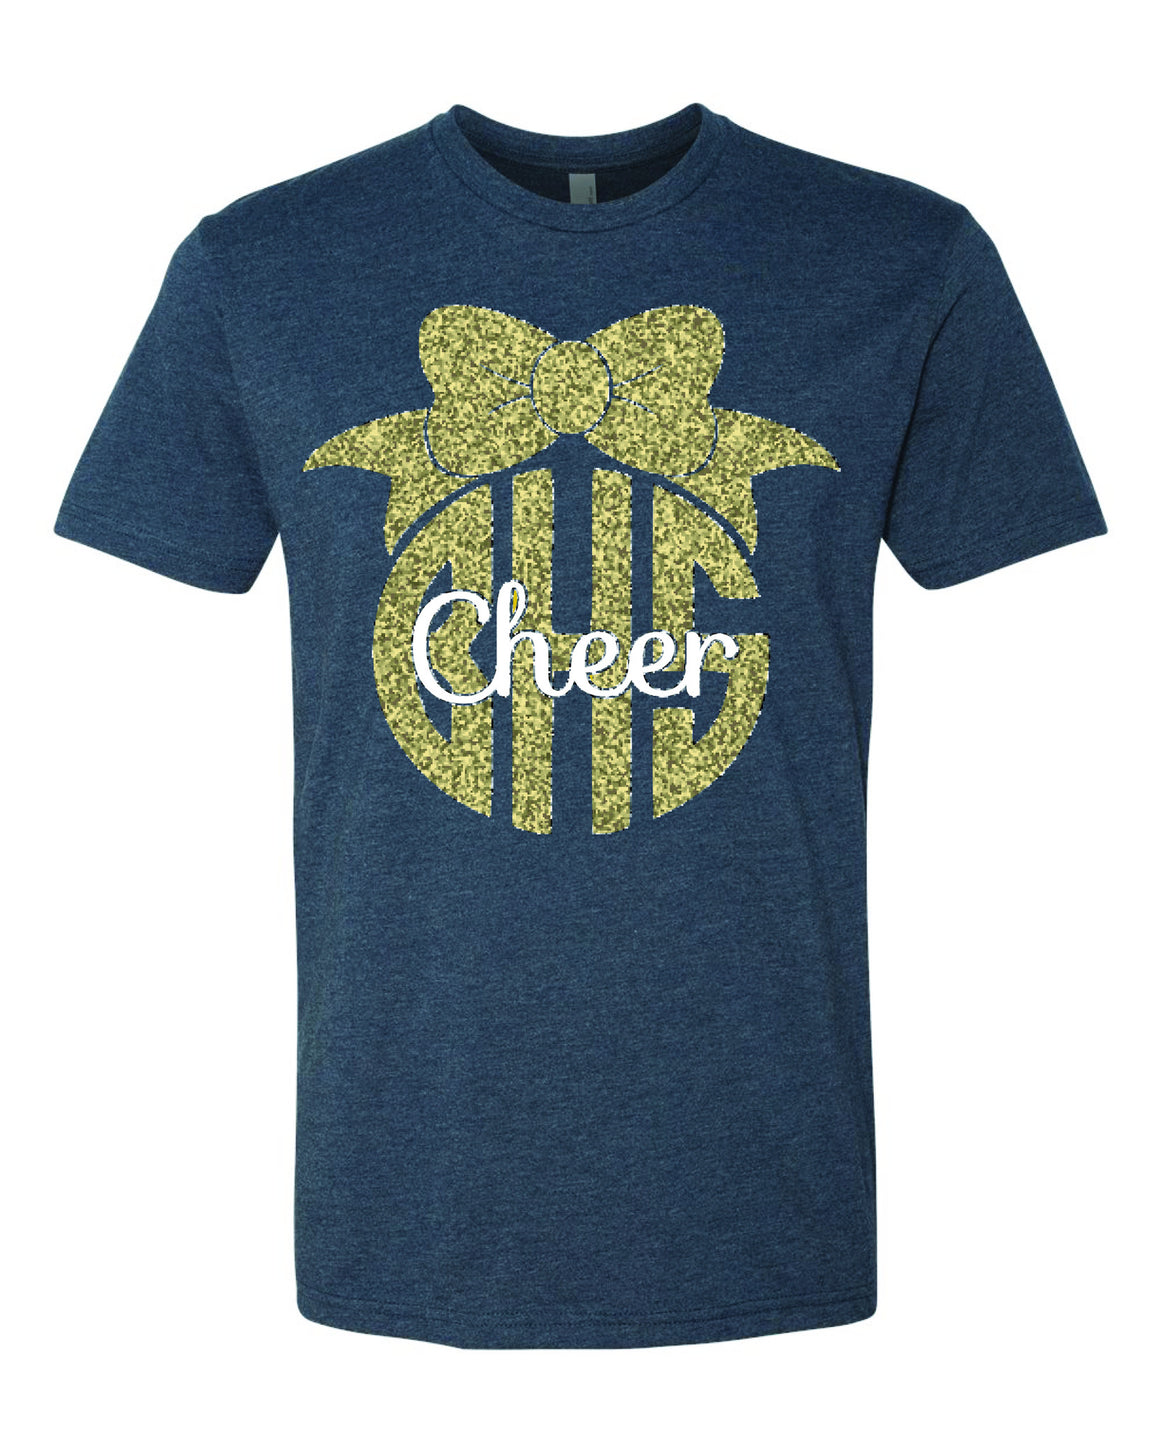 Adult Unisex Cheer Spirit Tee